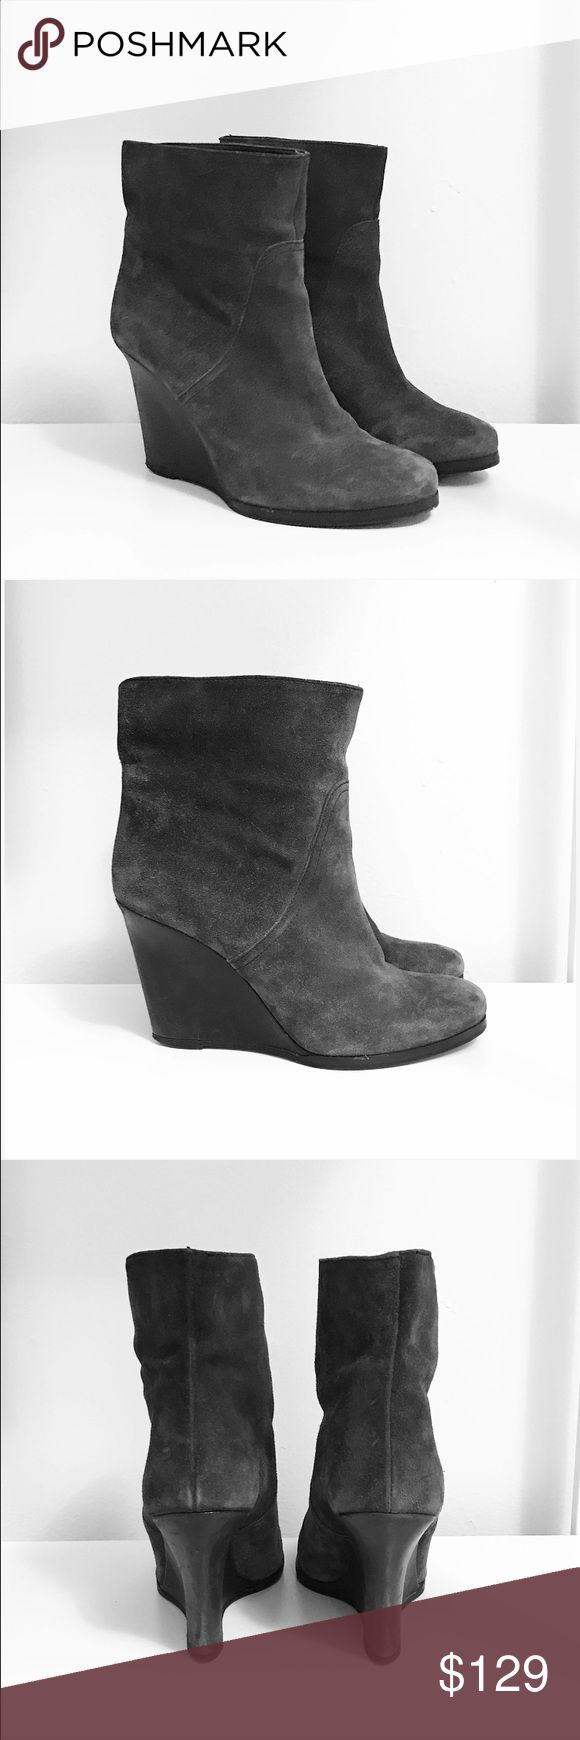 "BOSS Orange Hugo Boss Grey Suede Wedge Booties Suede upper, leather lining, 3.5"" wedge heel BOSS ORANGE Shoes Ankle Boots & Booties"